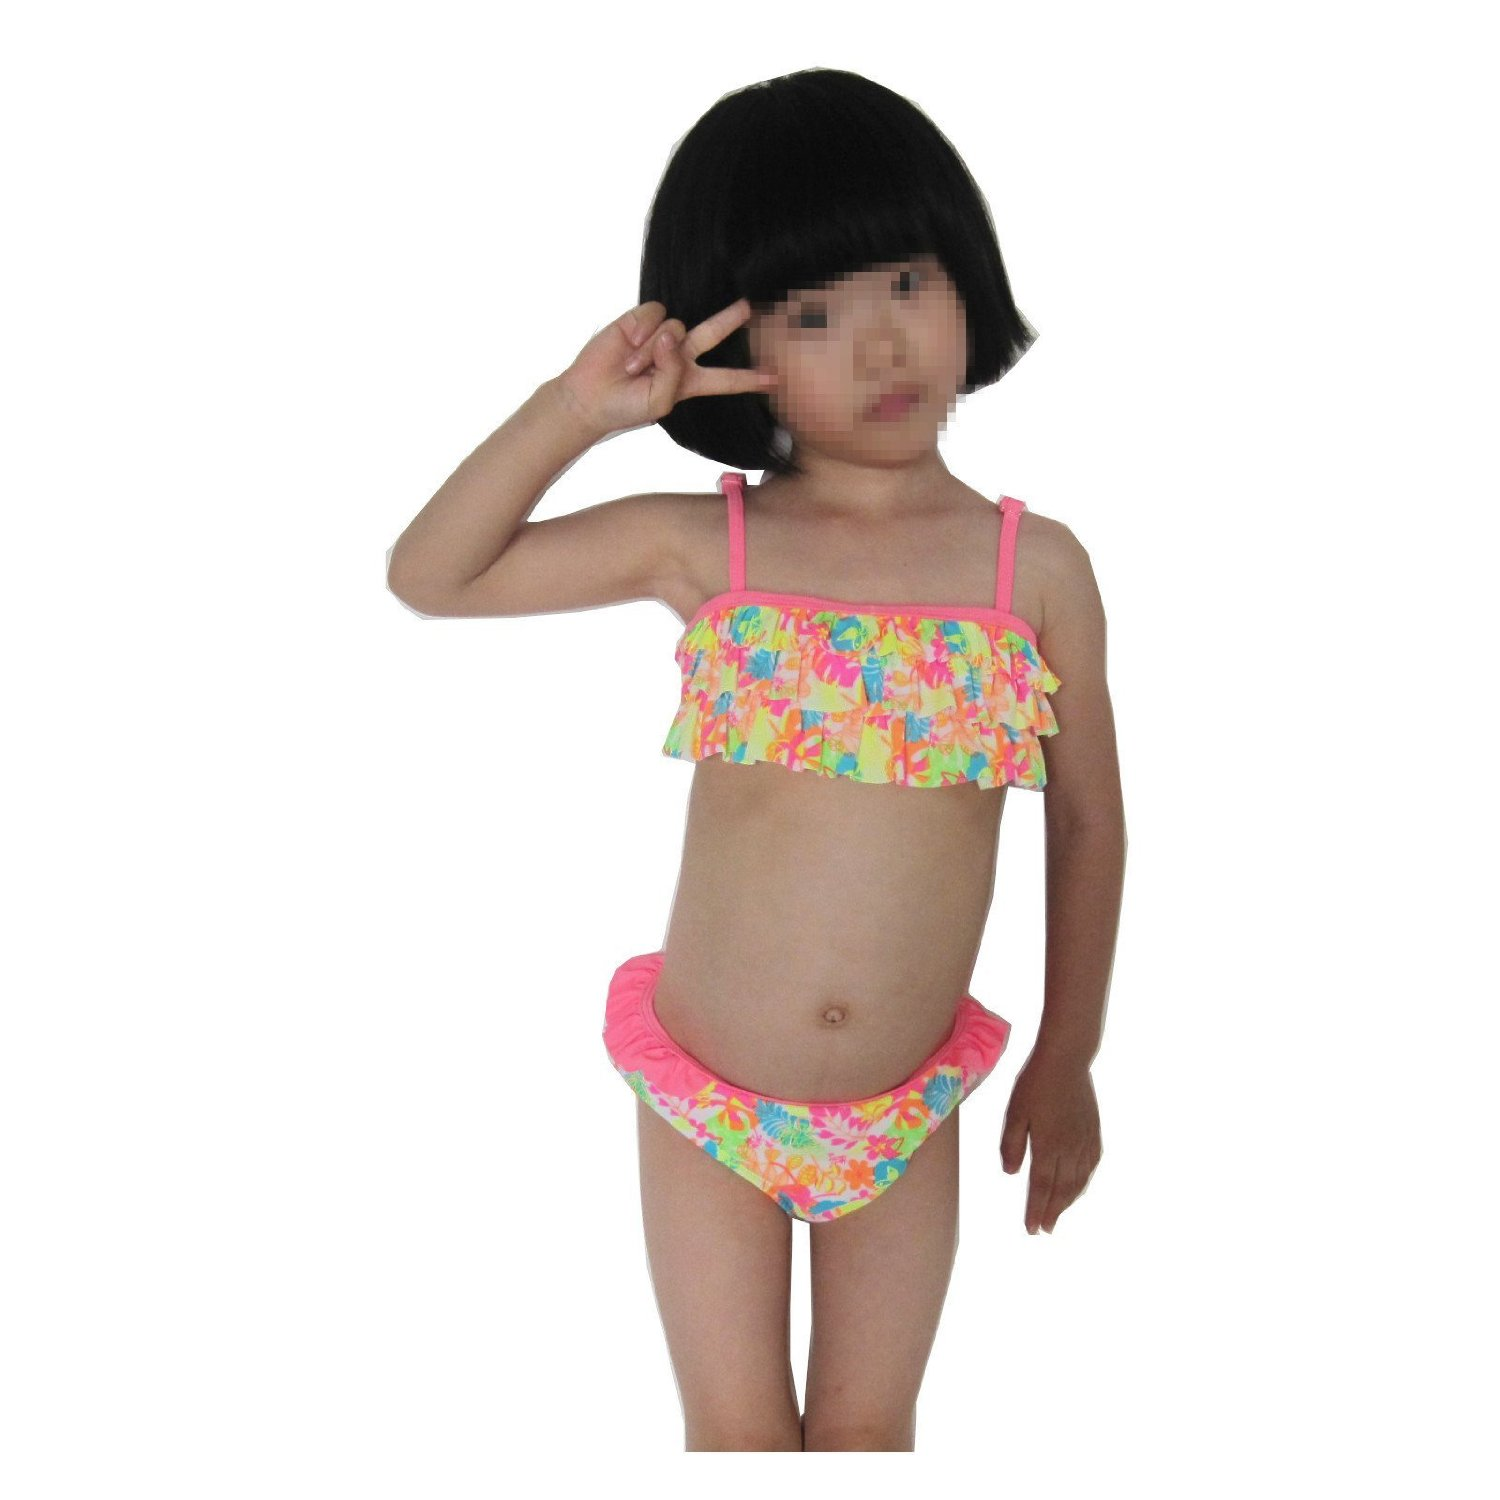 1f9212e9ef16c Get Quotations · Oustore Middle Girls' Tankini One Piece Swimsuit One  Shoulder Swimwear,2 Piece Bikini Flower